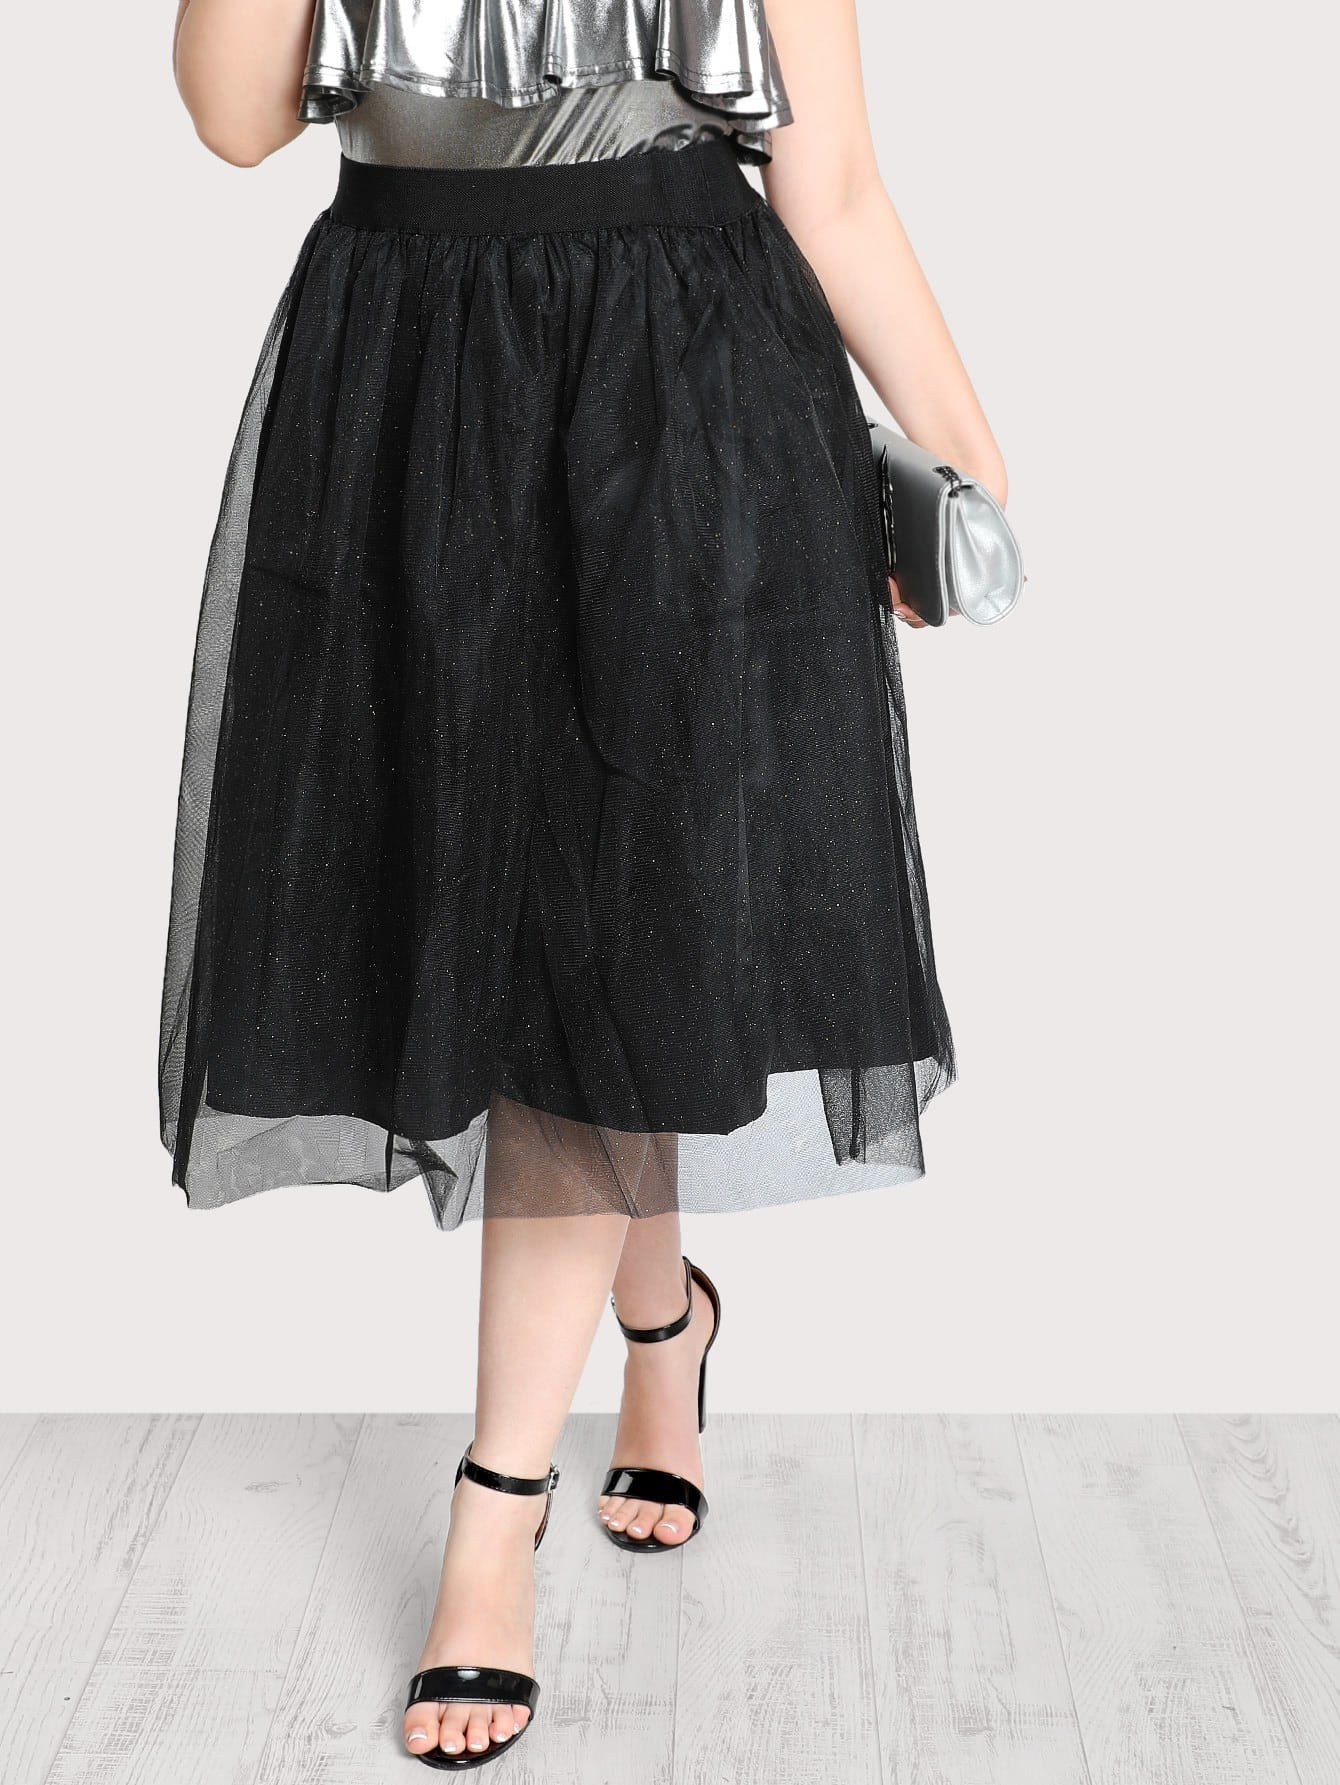 Image of High Rise Glitter Tulle Skirt